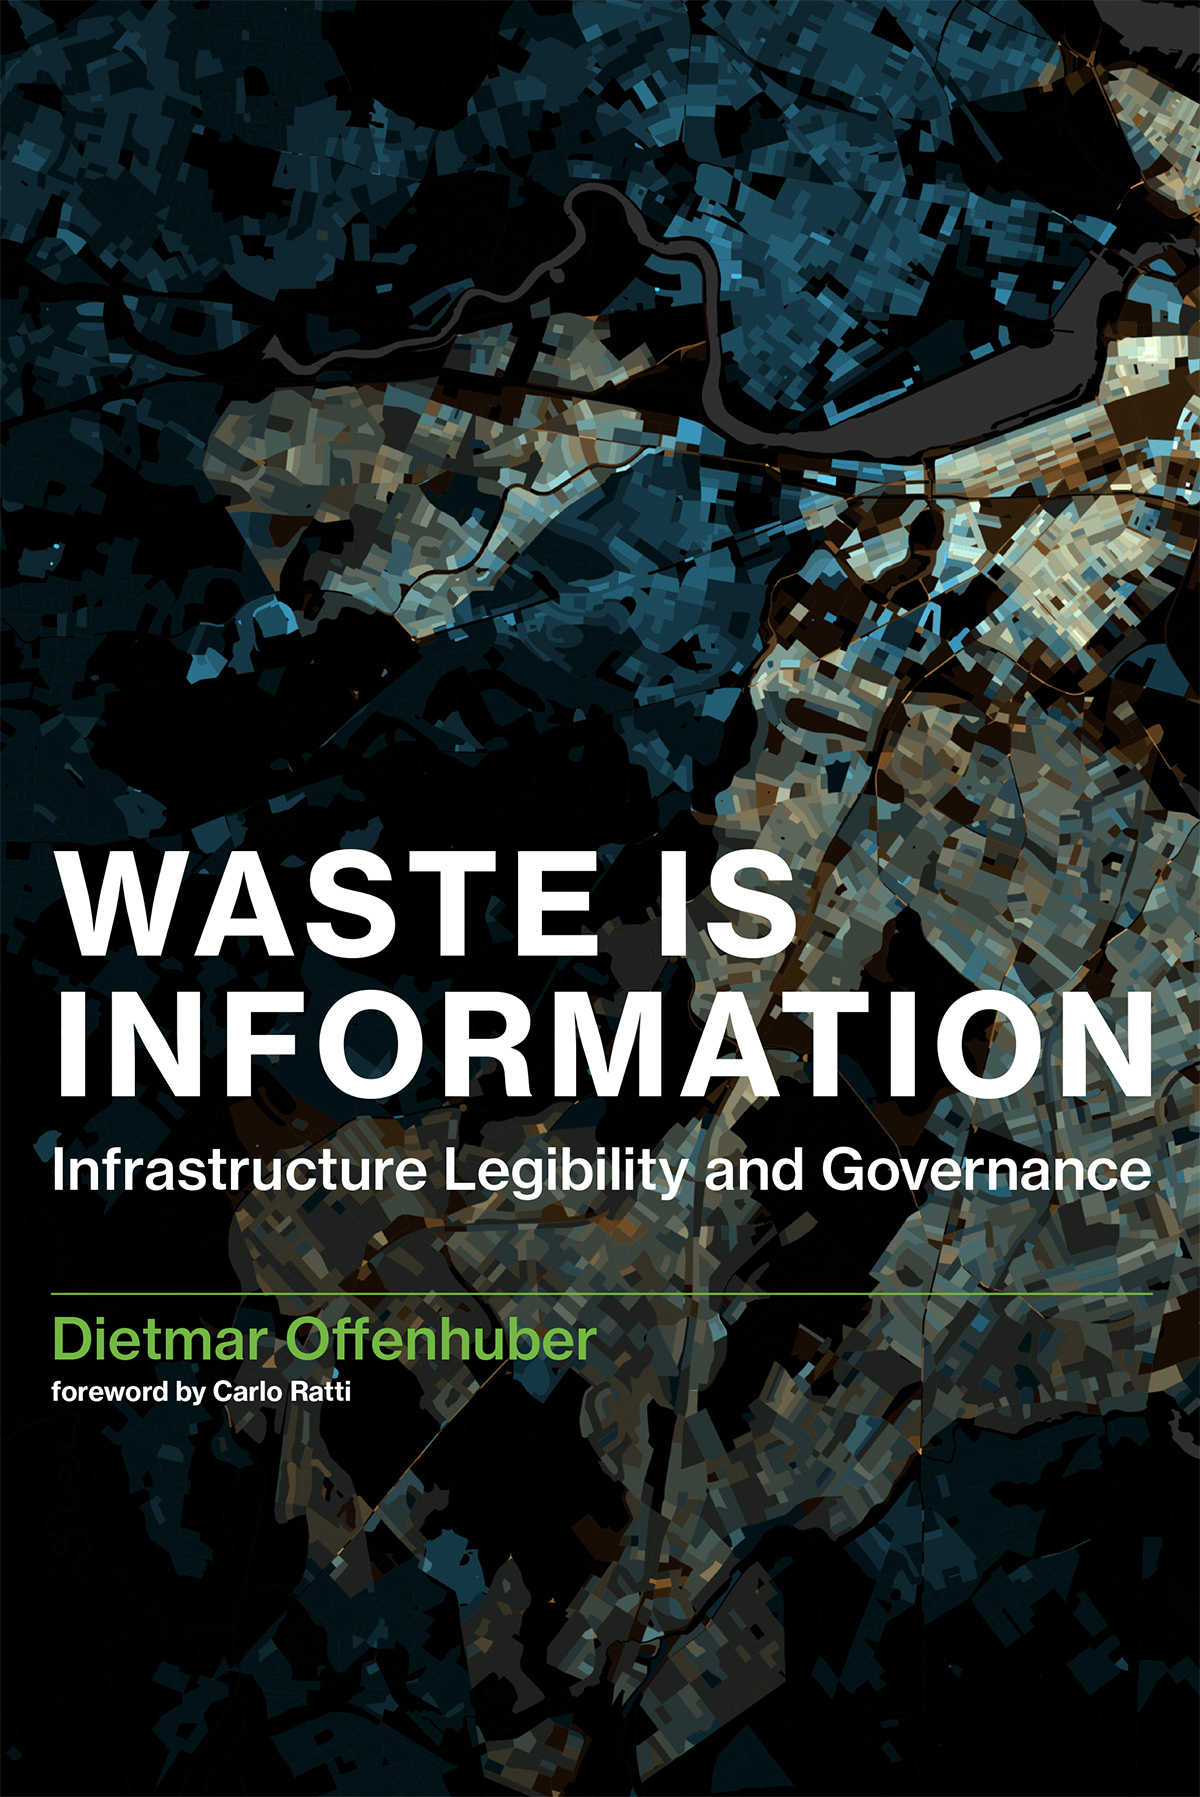 city management, waste, information, informal recyclers, waste management, urbanisation, urbanism, urban infrastructure, MIT, Carlo Ratti, Dietmar Offenhuber, recycling, circular economy, waste management, resources, governance, urban resilience, waste facilities, waste collection, waste transport, resource recovery, reuse, waste prevention, wasteless future